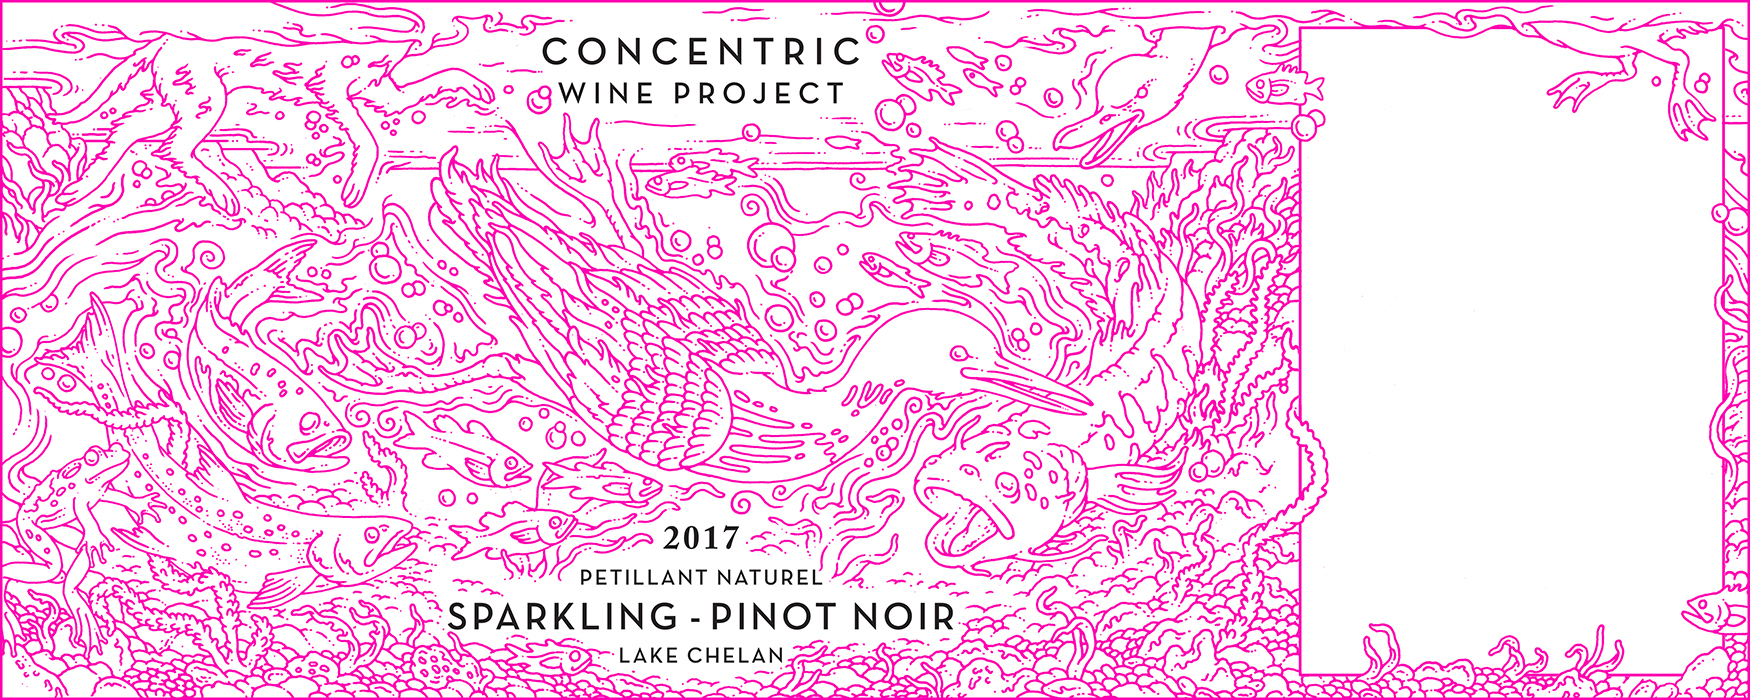 Concentric Wine Project. Lake Chelan, WA.